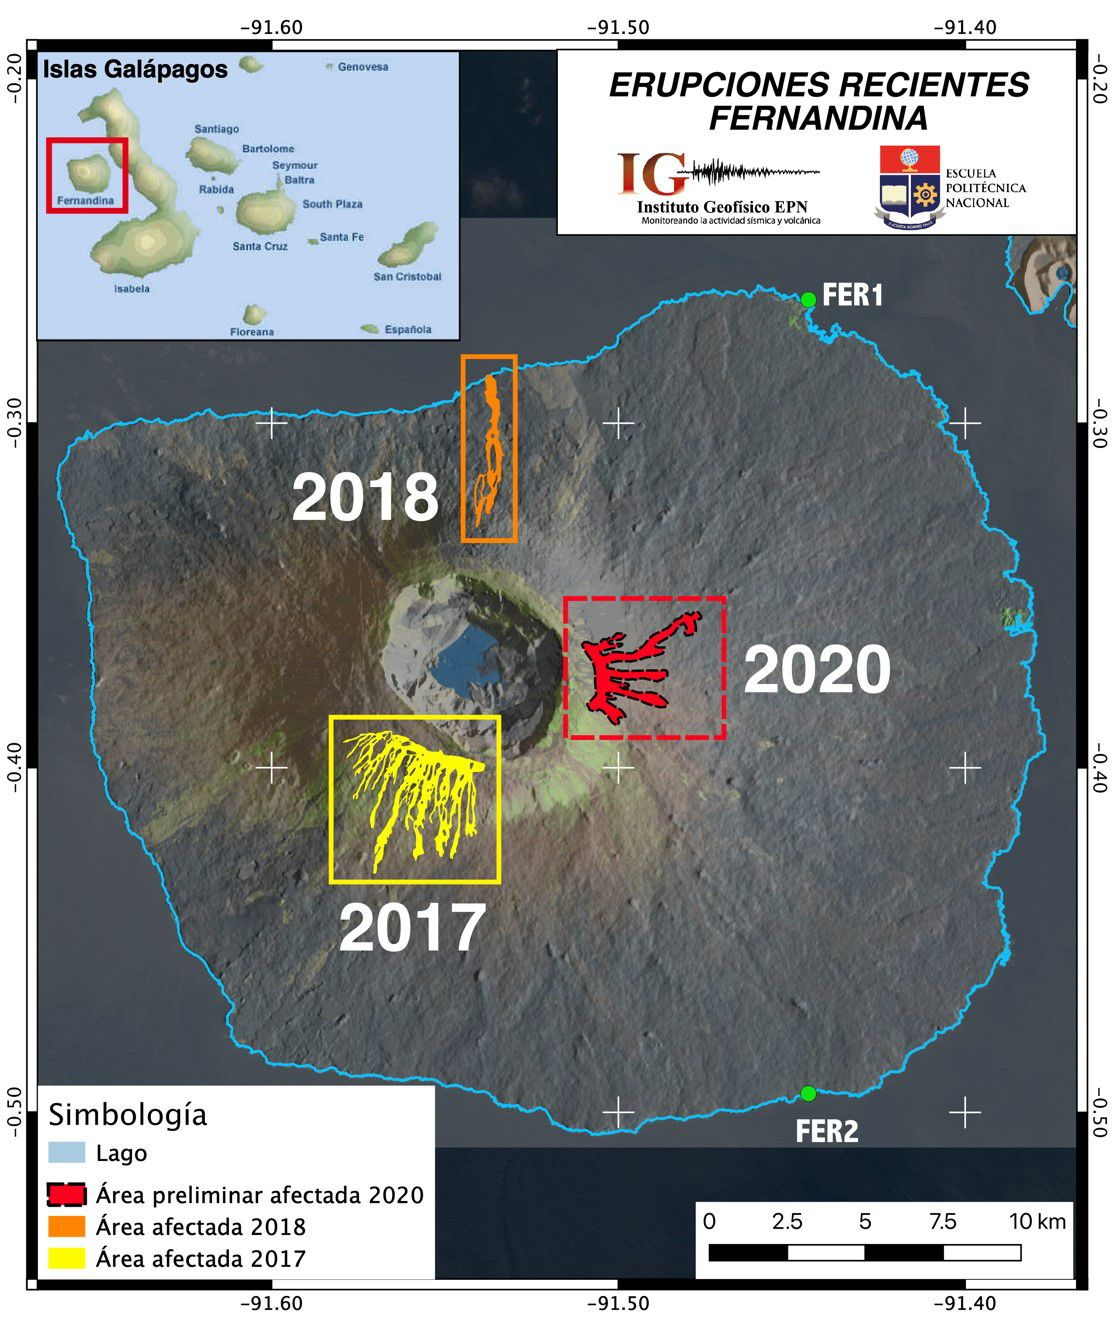 The map of the recent eruptions of the Fernandina volcano highlights in red the area previously affected by the lava flows produced on January 12, 2020 (red area), which cover an area of approximately 3.8 km2. Map obtained thanks to InSAR coherence images (processed with ISCE, P. Espín, prepared by FJ. Vásconez).